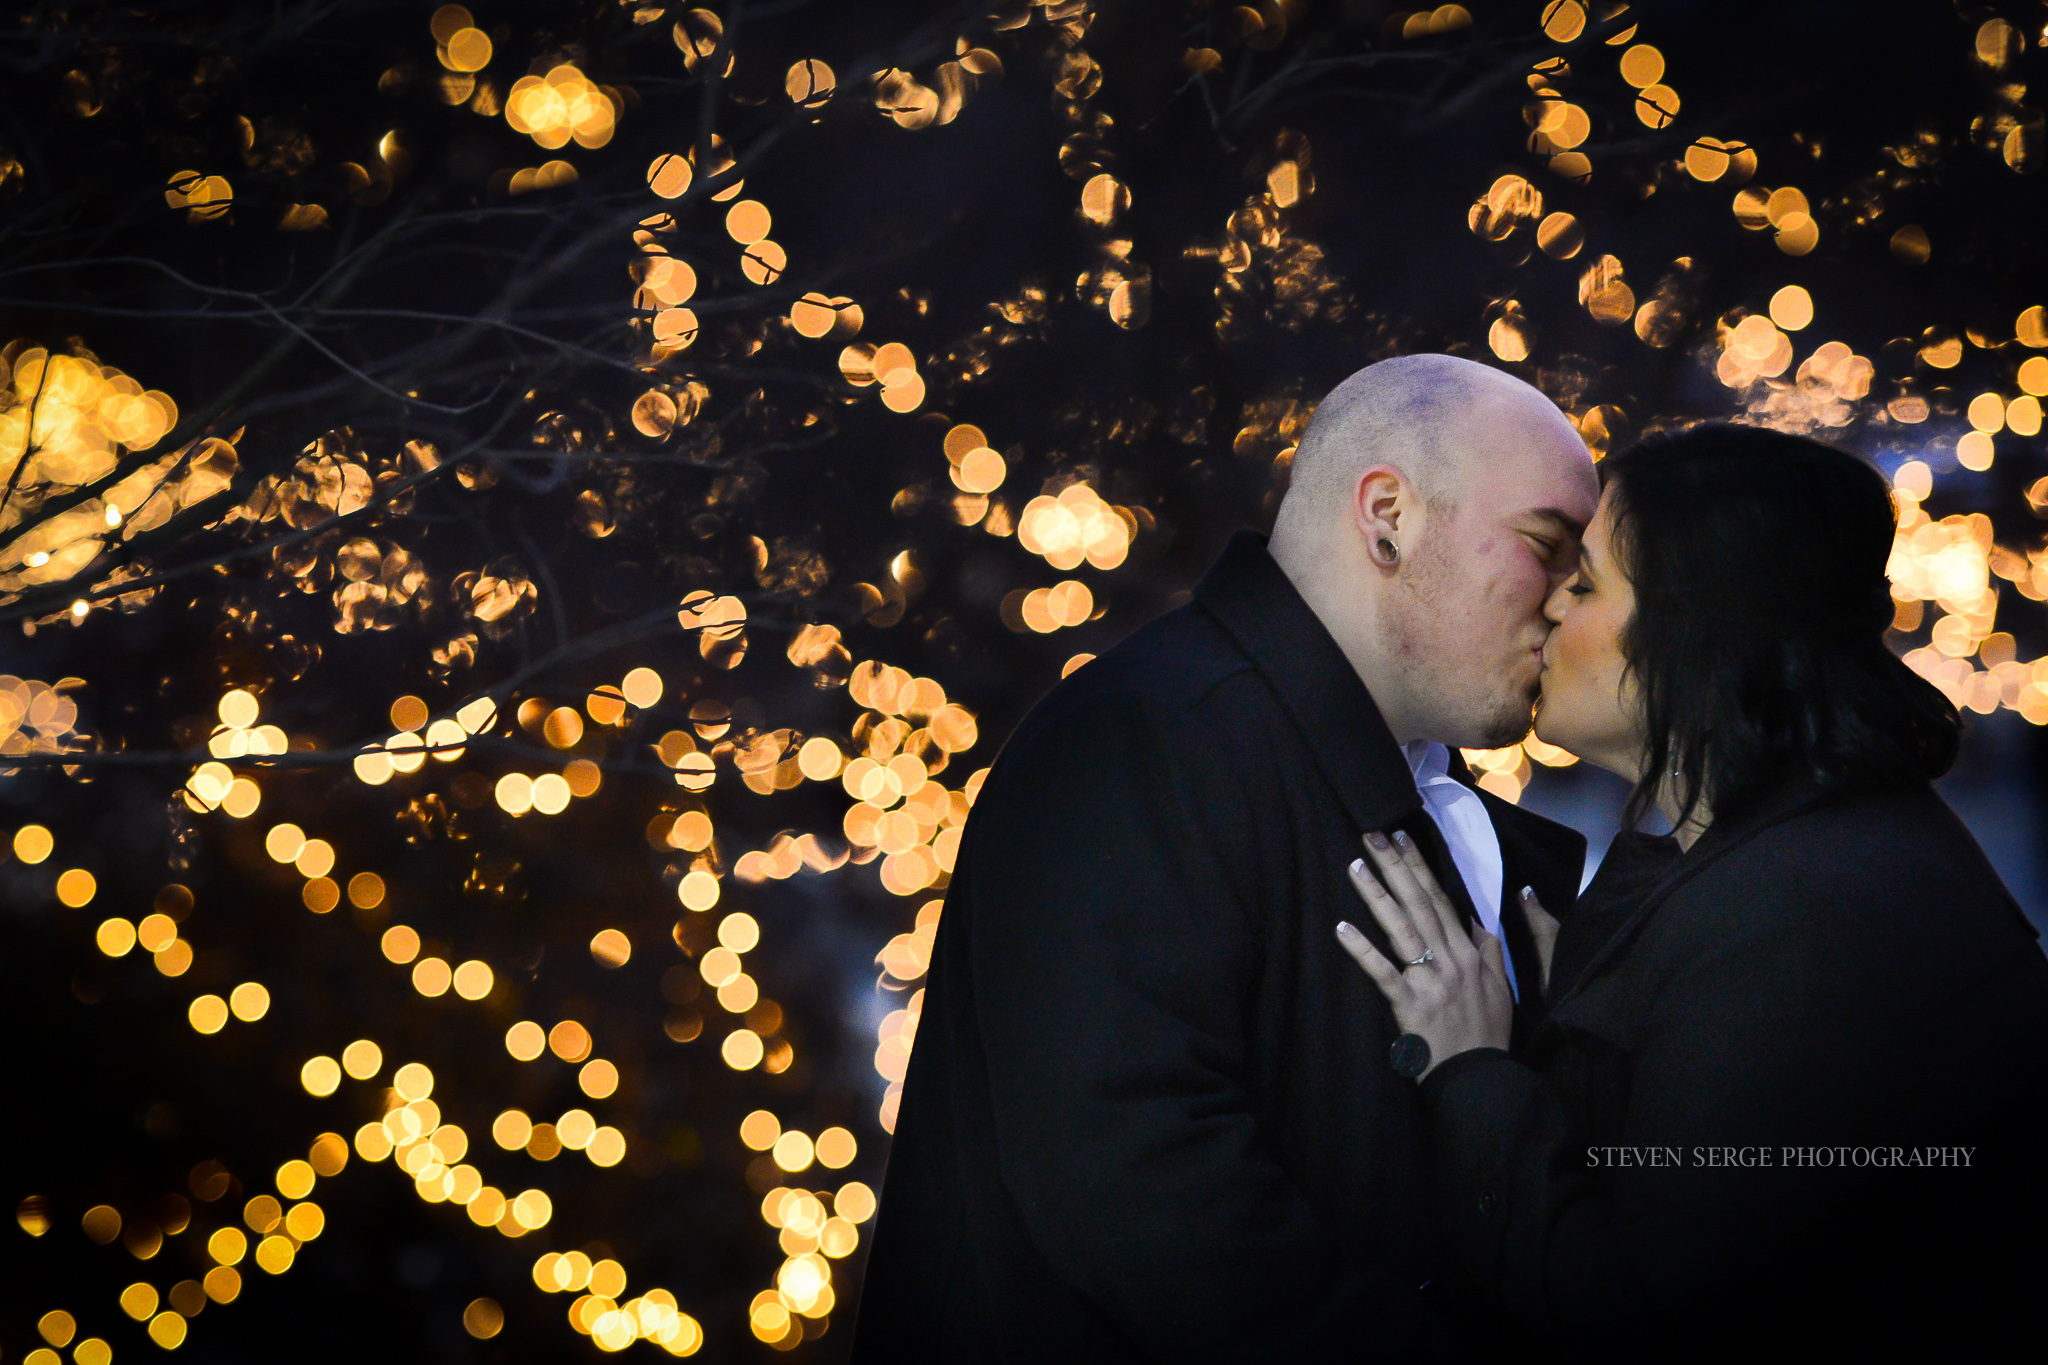 Rosa-NEPA-Wedding-Engagement-Photographer-Waverly-Clarks-Summit-Scranton-Photographer-1-2.jpg